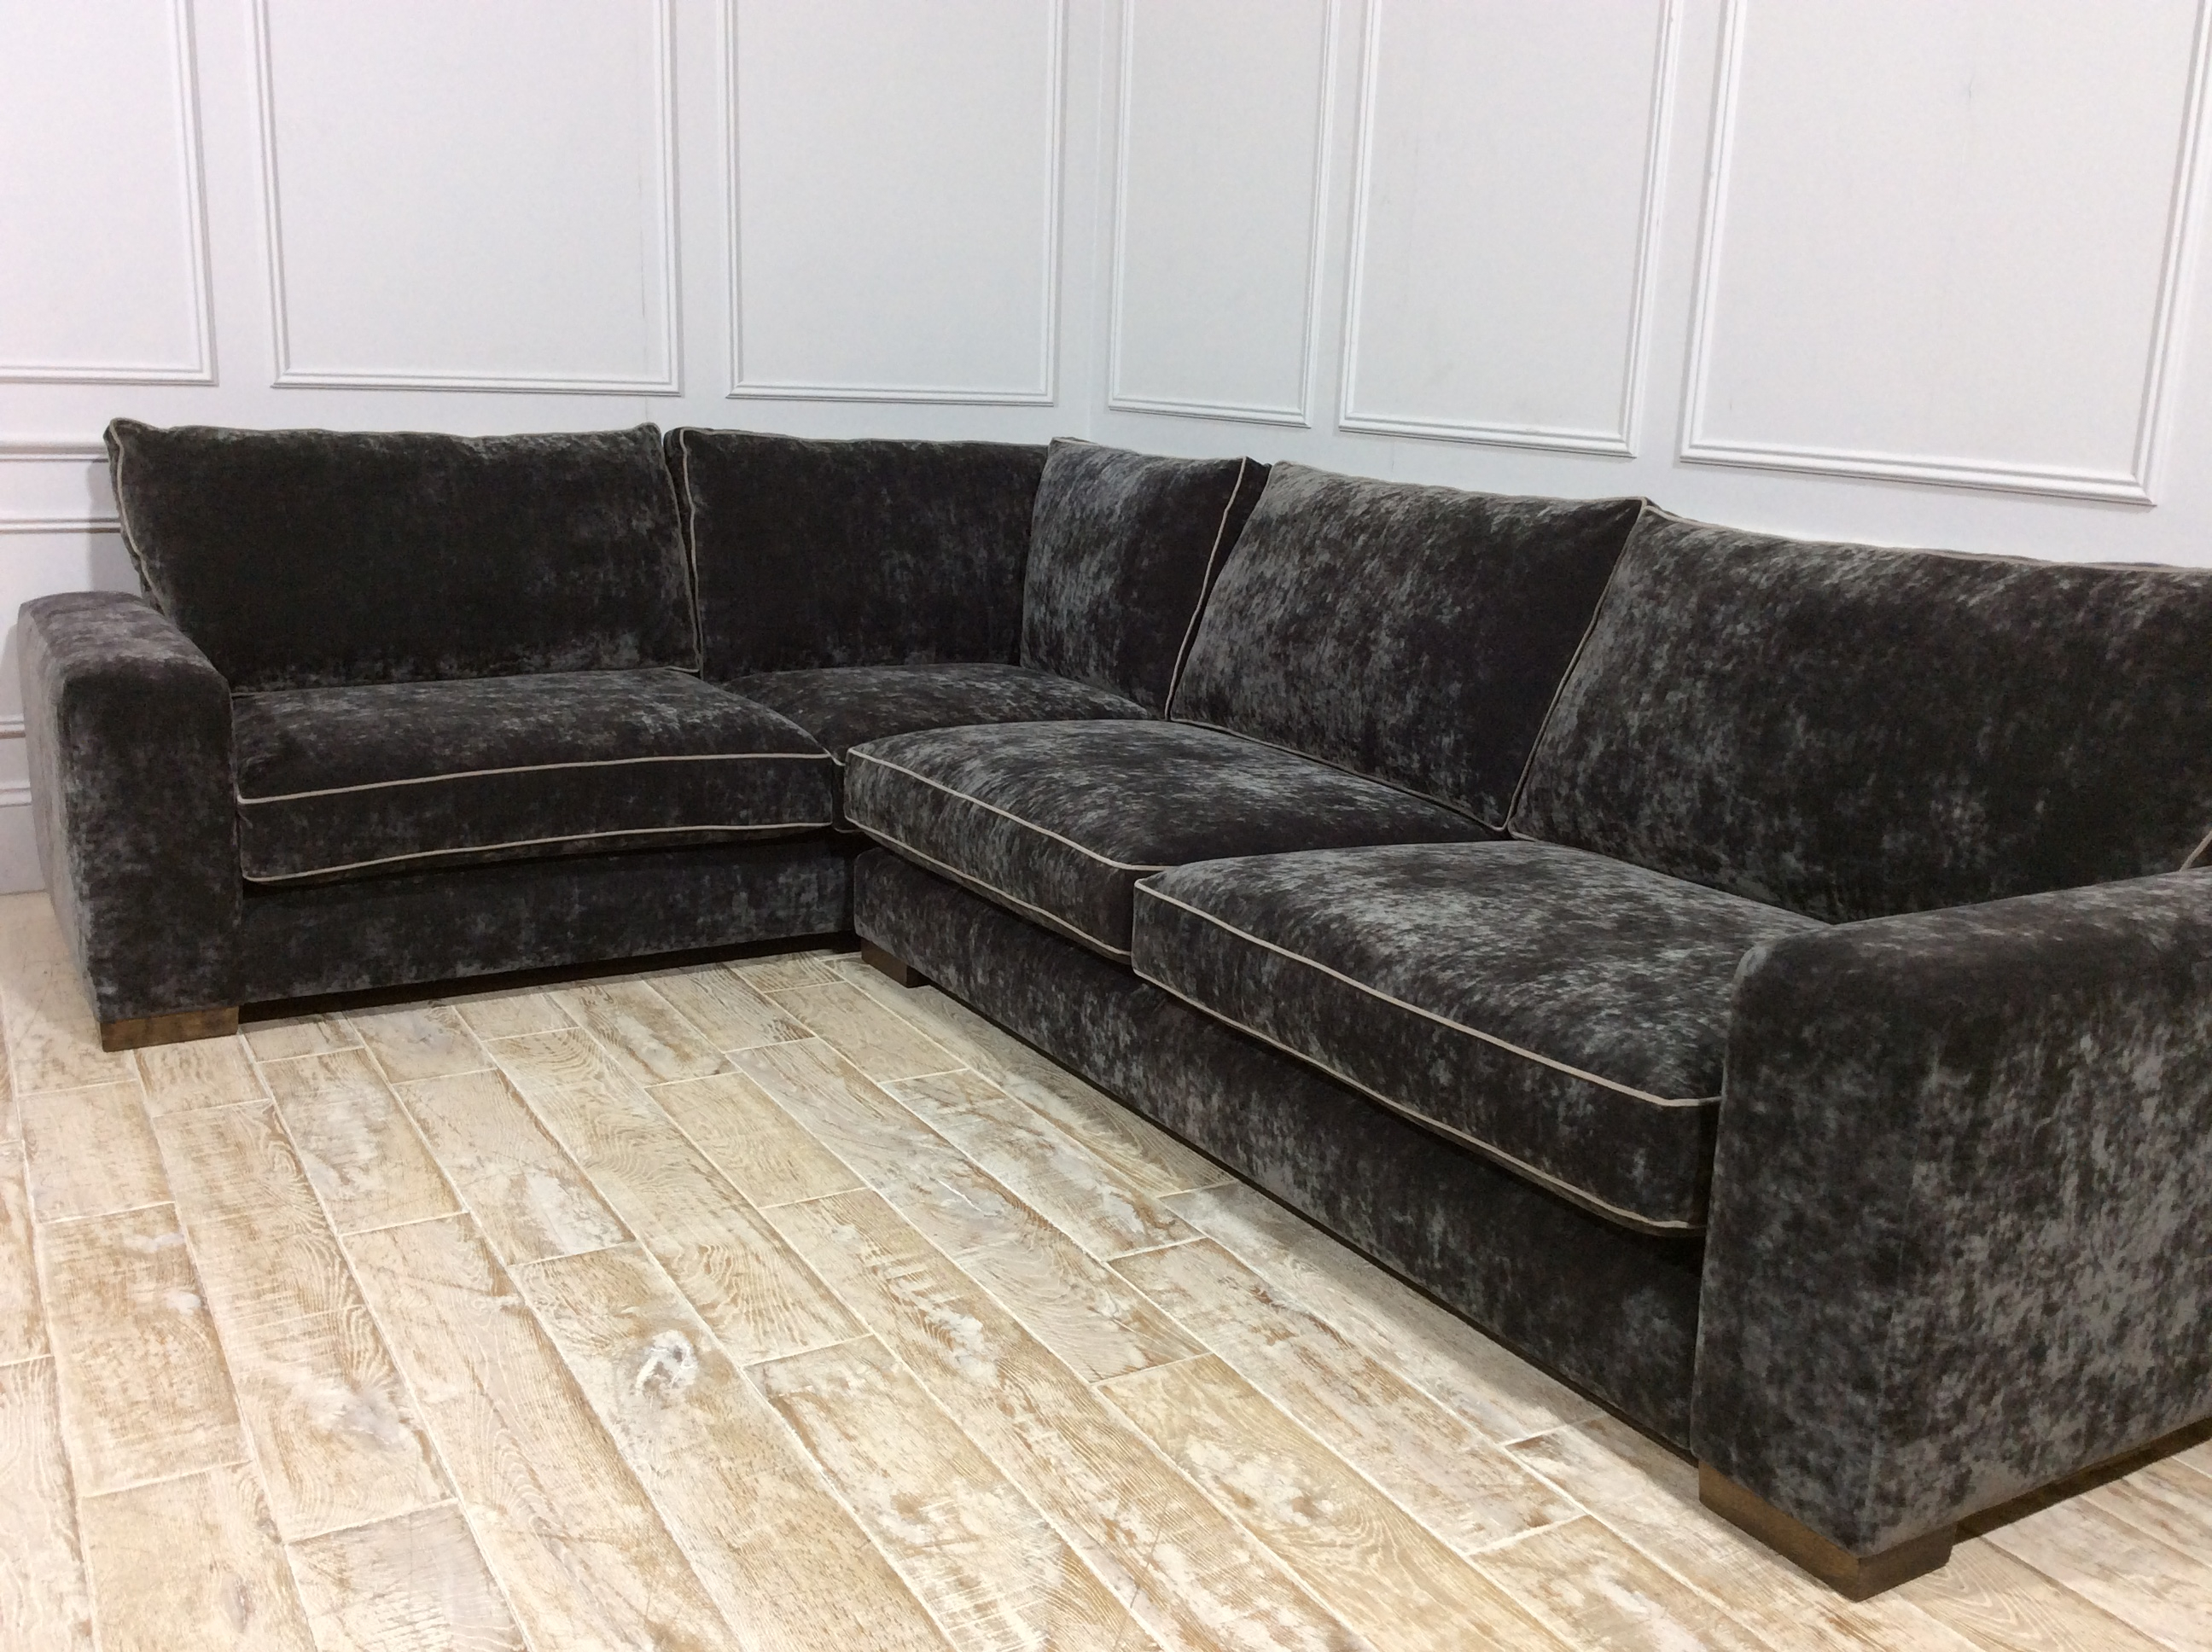 Ashdown Corner Fabric Sofa in Vintage Cardamom with Mystic Mink Piping